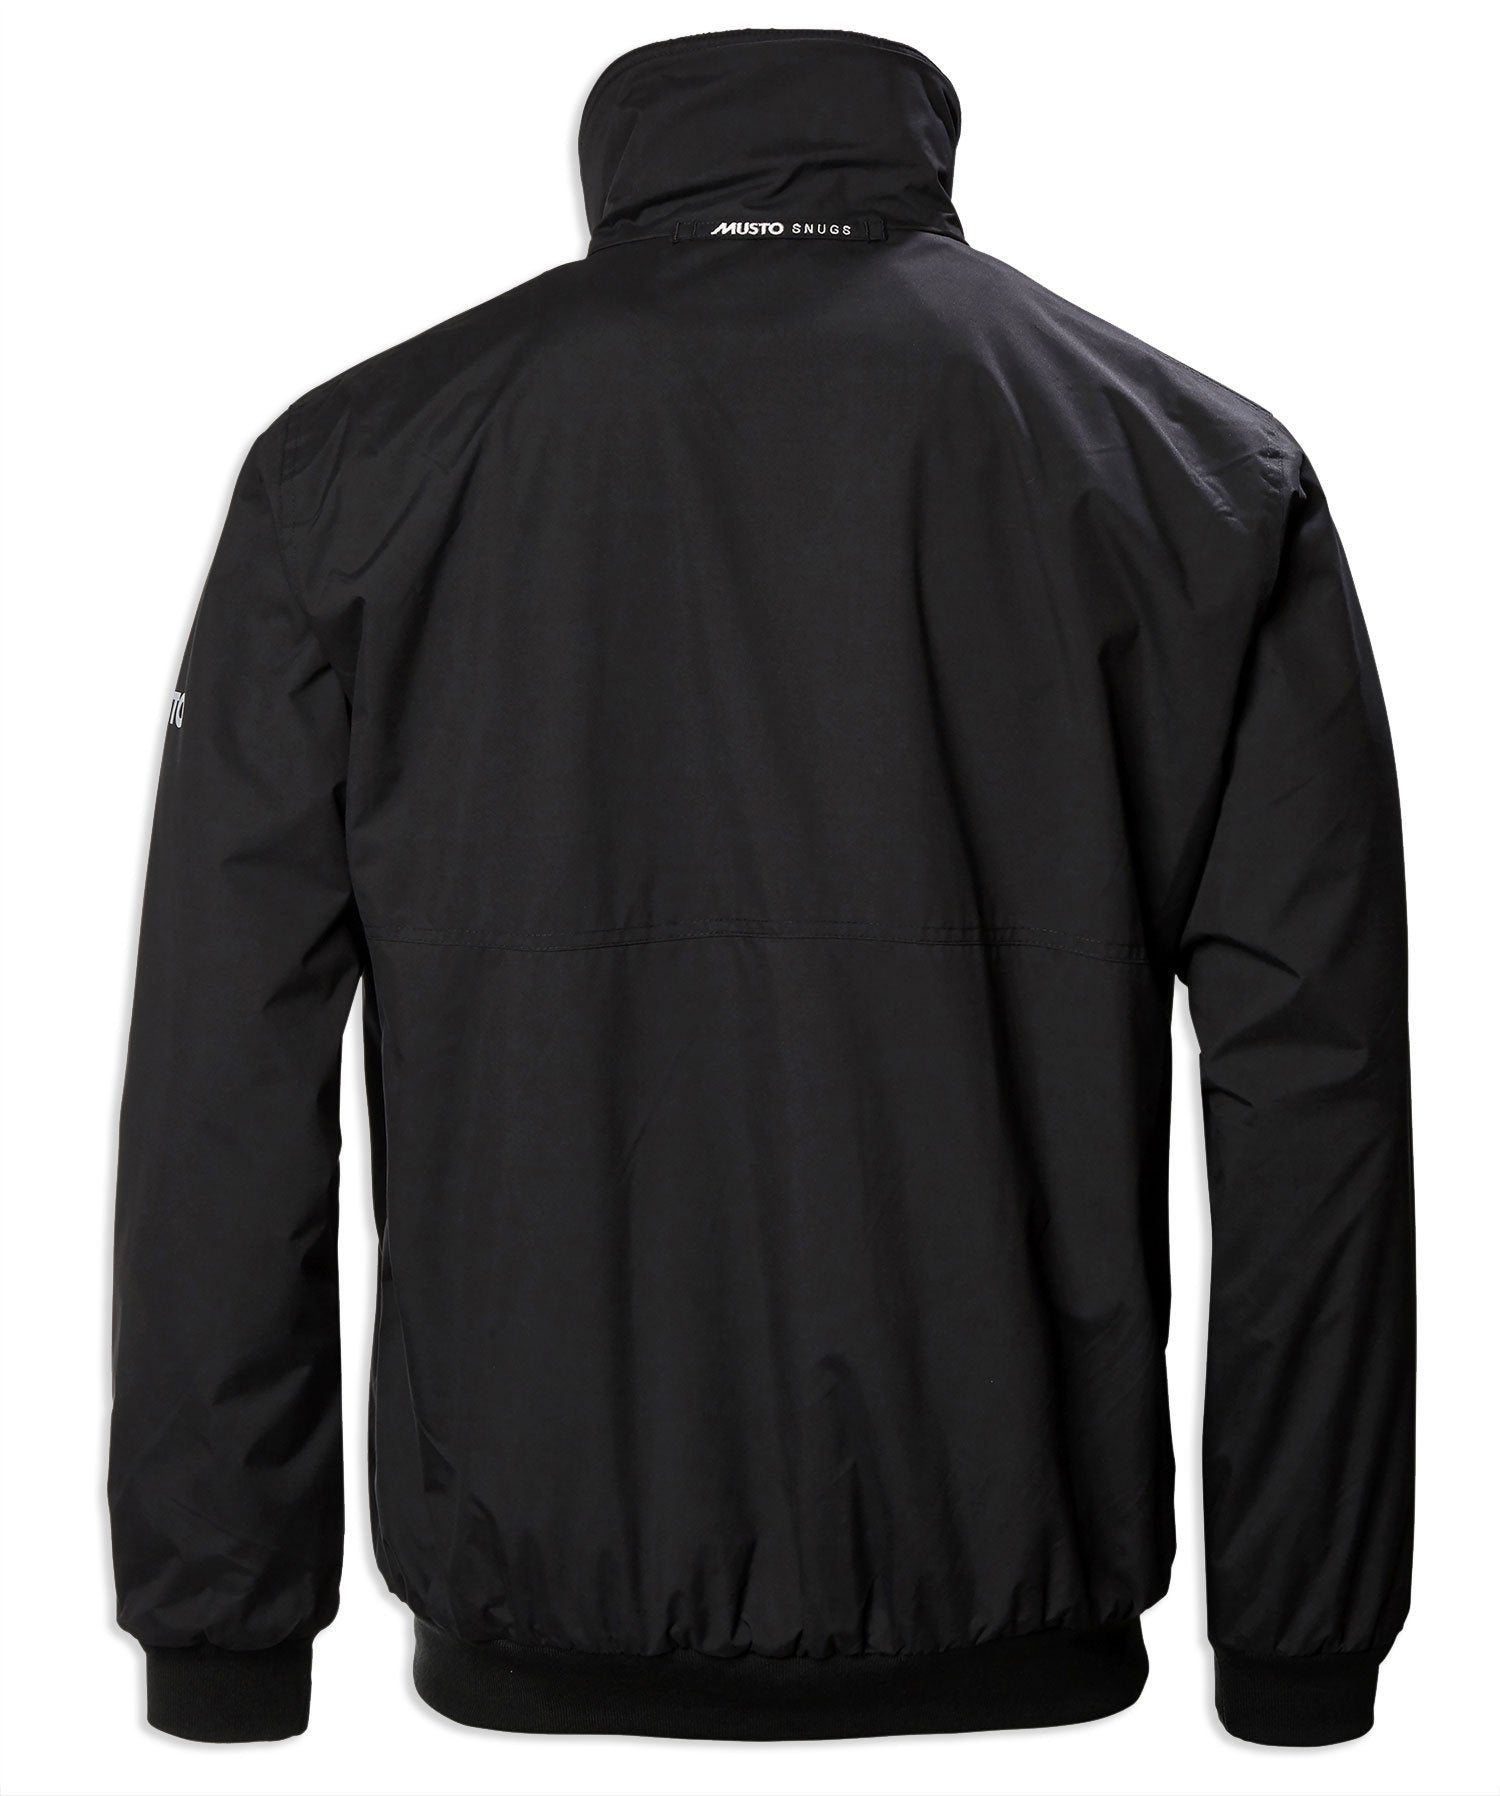 Back view Black Musto Classic Snug Blouson Jacket